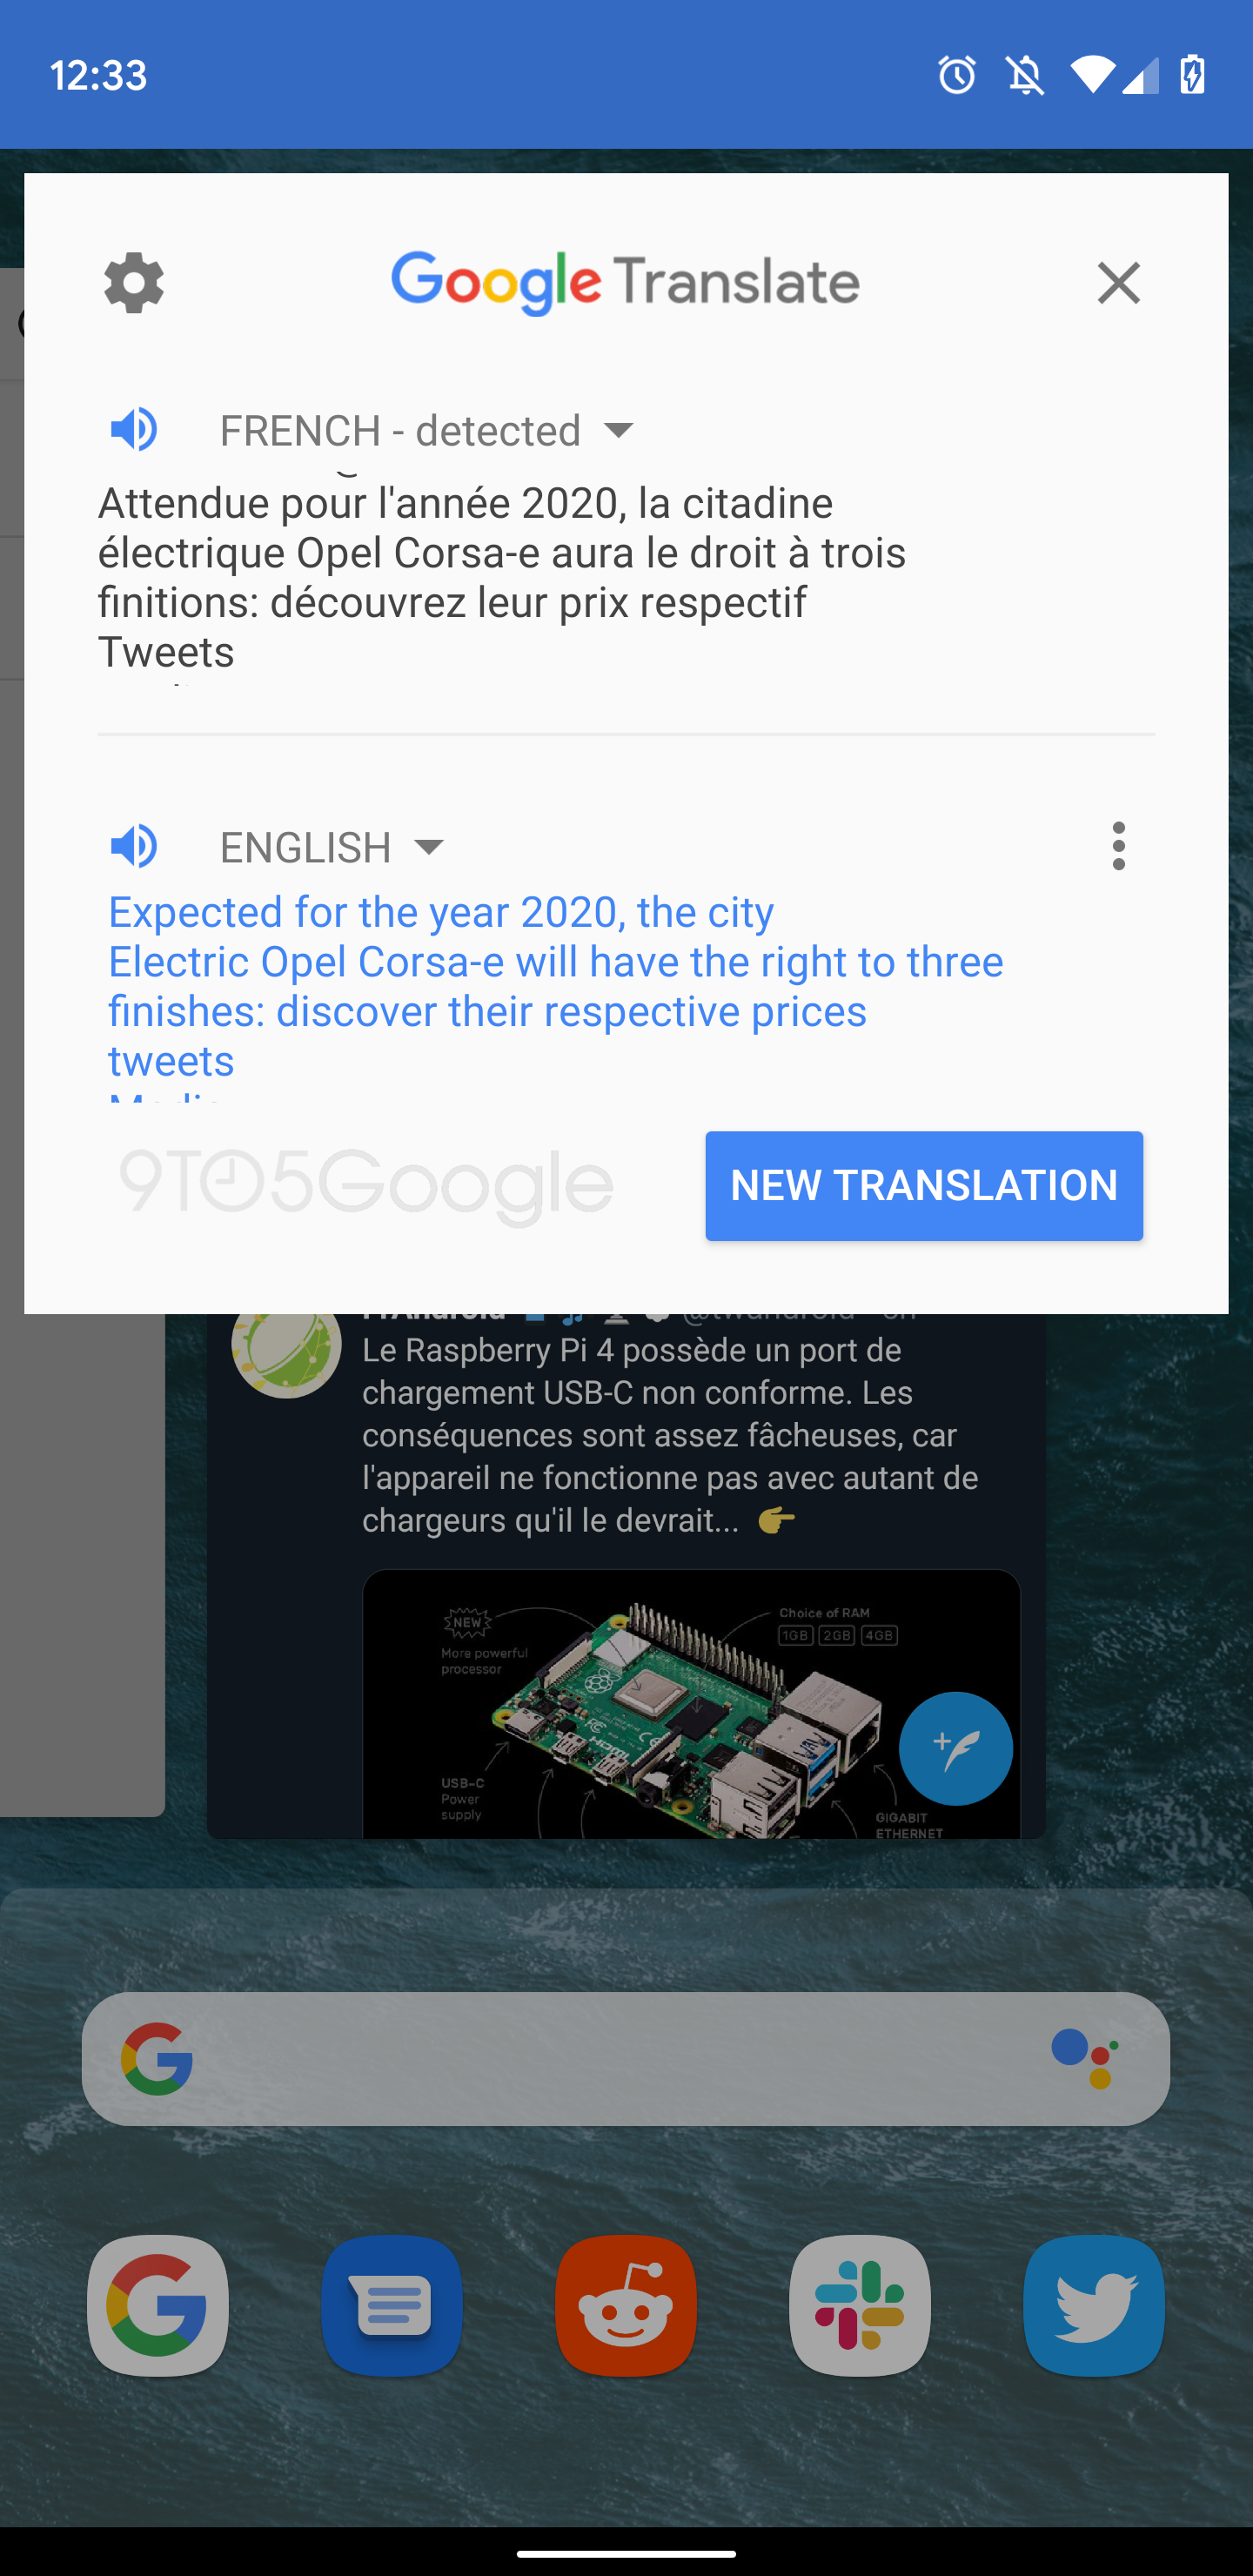 Android Q bringing Google Translate to recent apps on Pixel - 9to5Google